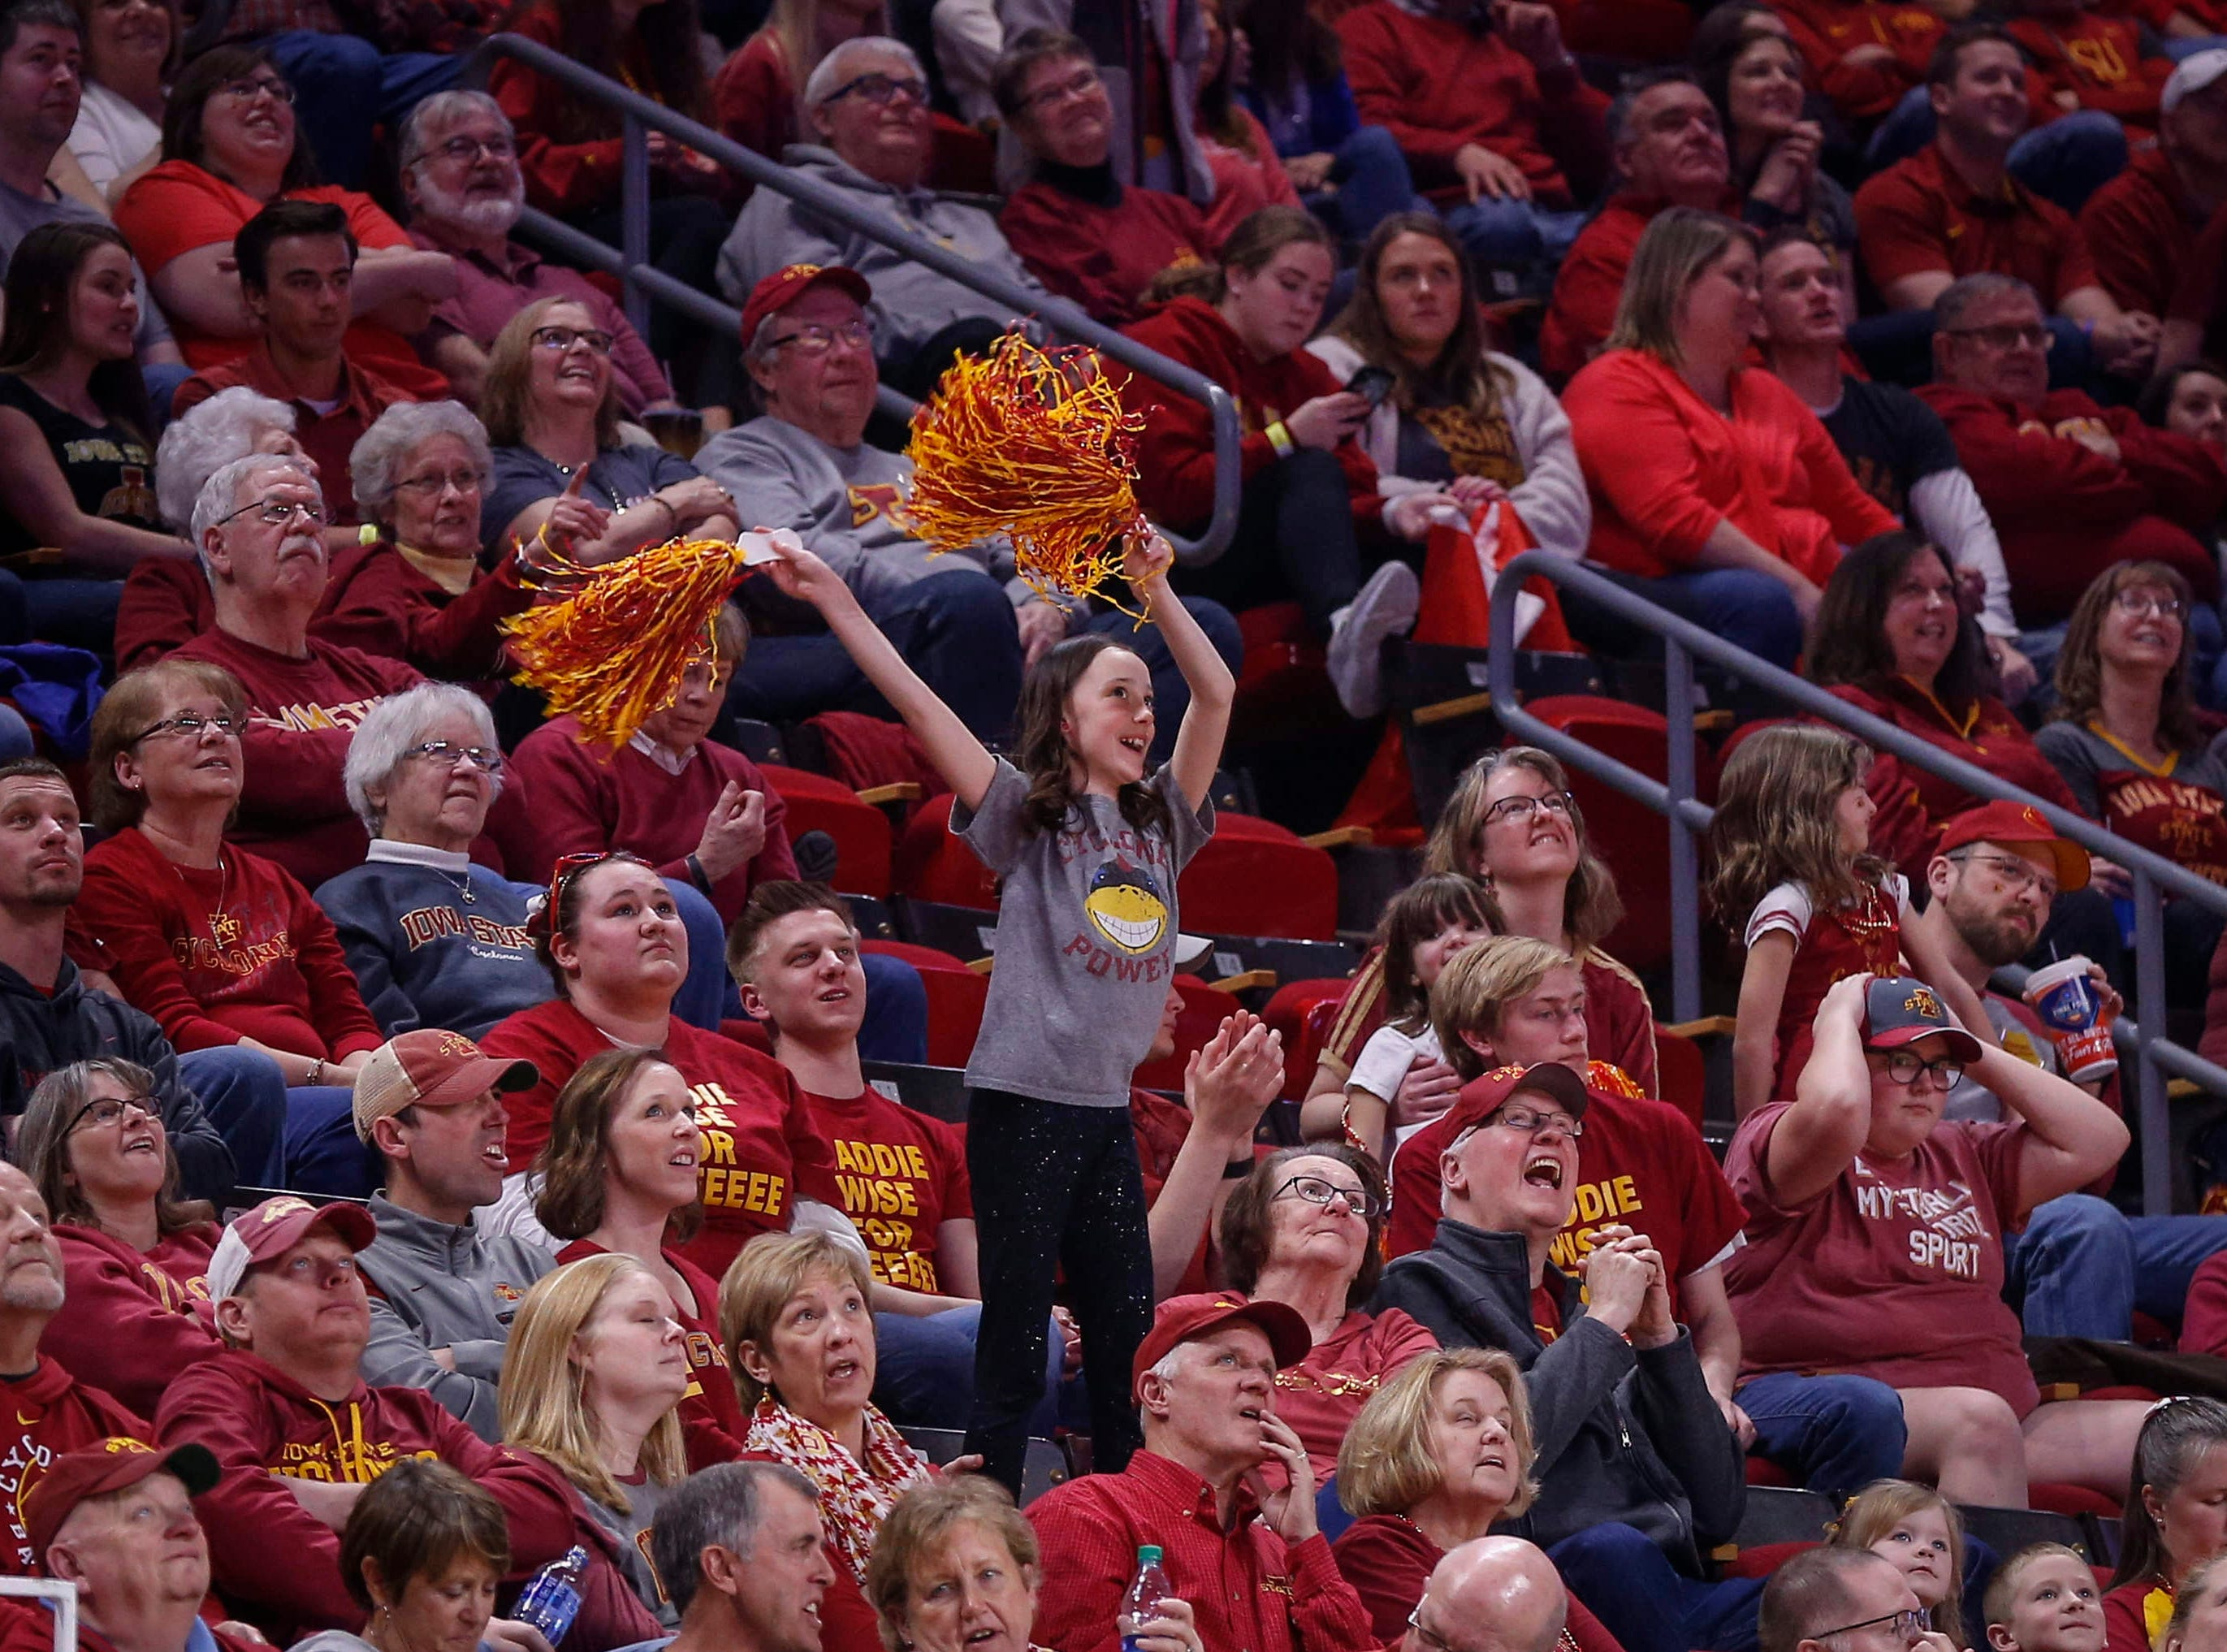 A young Iowa State fan cheers on the Cyclones women's basketball team as they cruise to a win over New Mexico State on Saturday, March 23, 2019, at Hilton Coliseum in Ames.